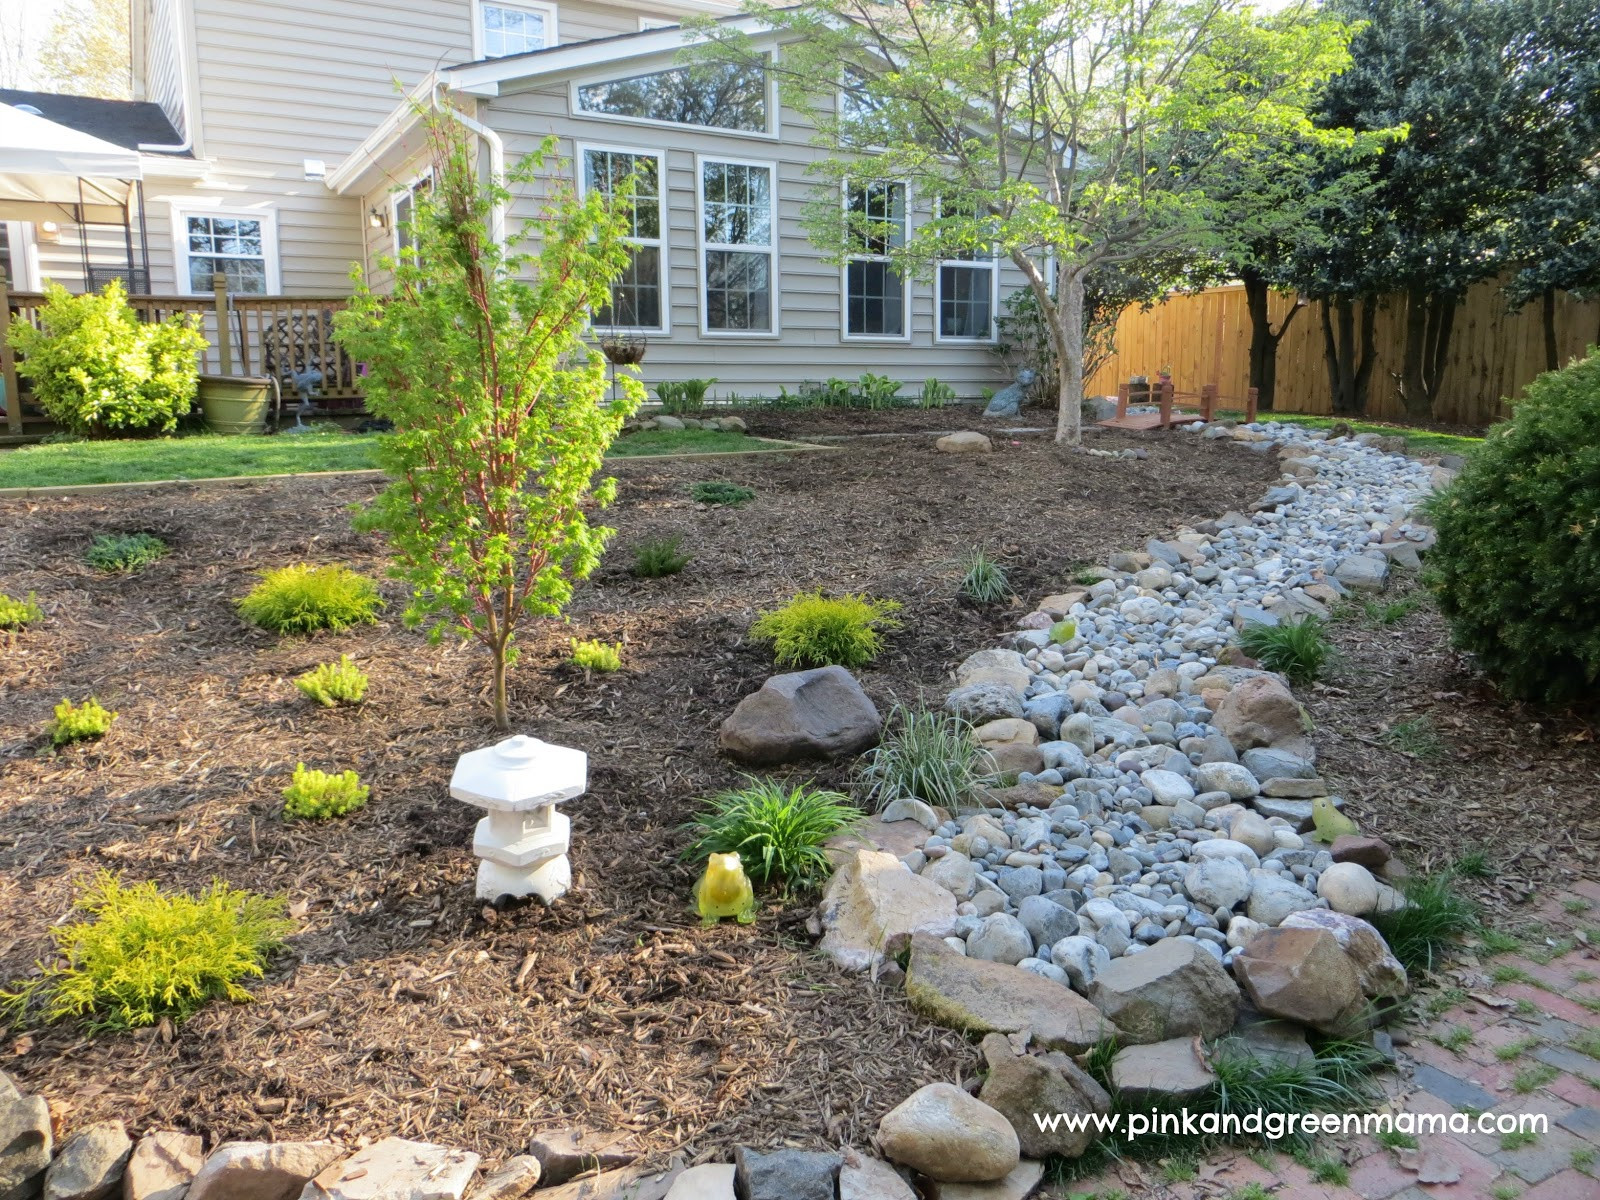 Best ideas about DIY Backyard Makeovers . Save or Pin Pink and Green Mama DIY Backyard Makeover on a Bud Now.